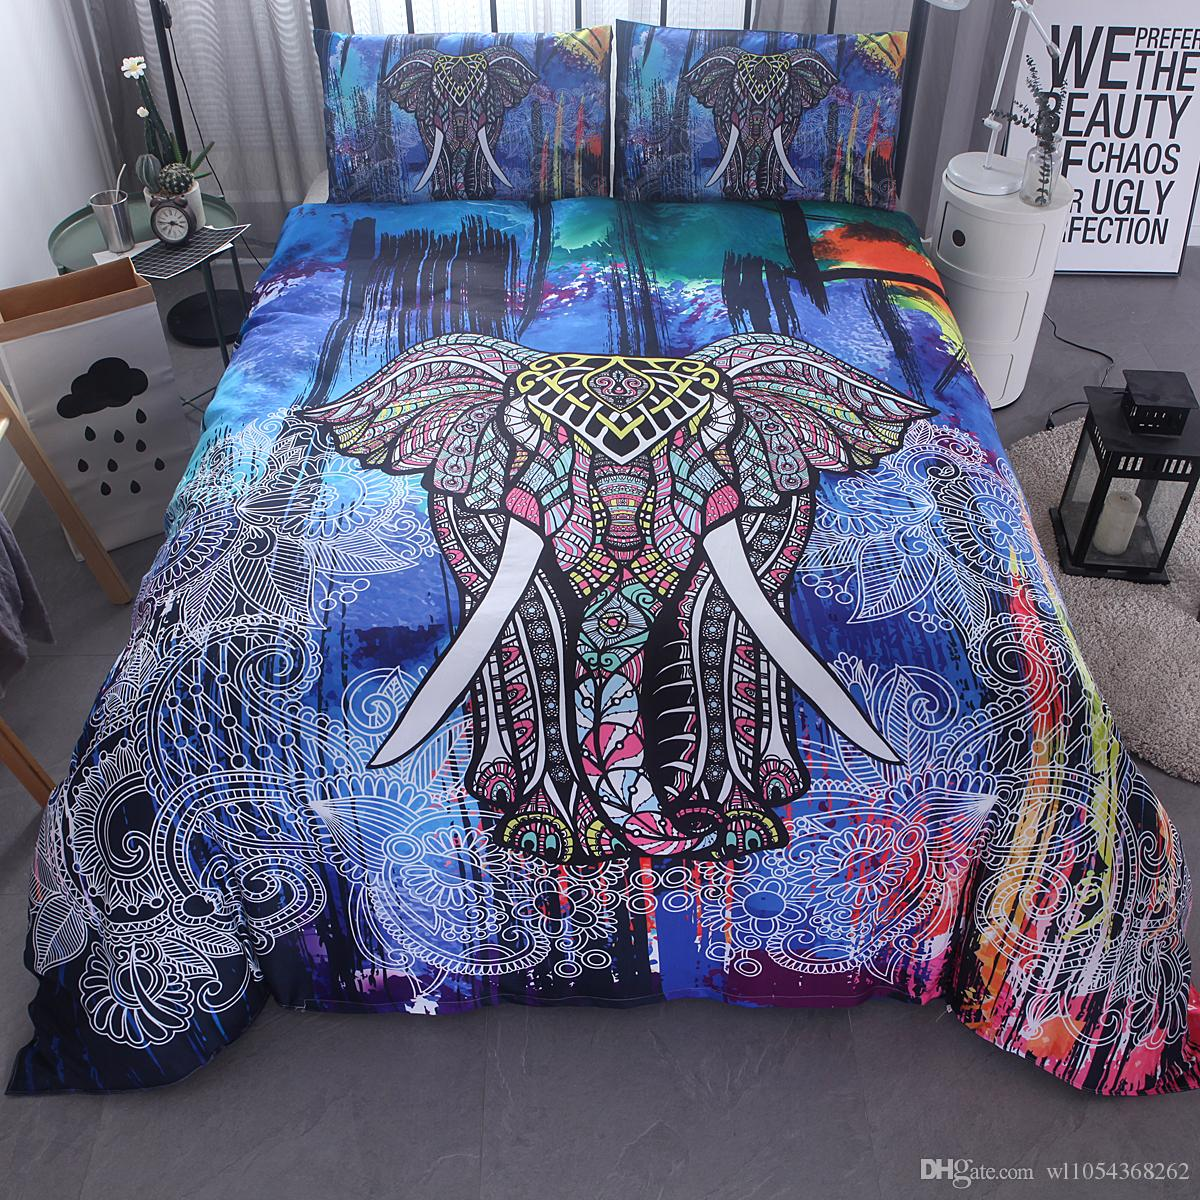 Queen Size Elephant Bedding.Home Textils India Colorful 3d Elephant Bedding Set Mandala Duvet Cover Pillowcases Twin Uk Queen King Size For Adult Kids Christmas Gifts Pink Duvet